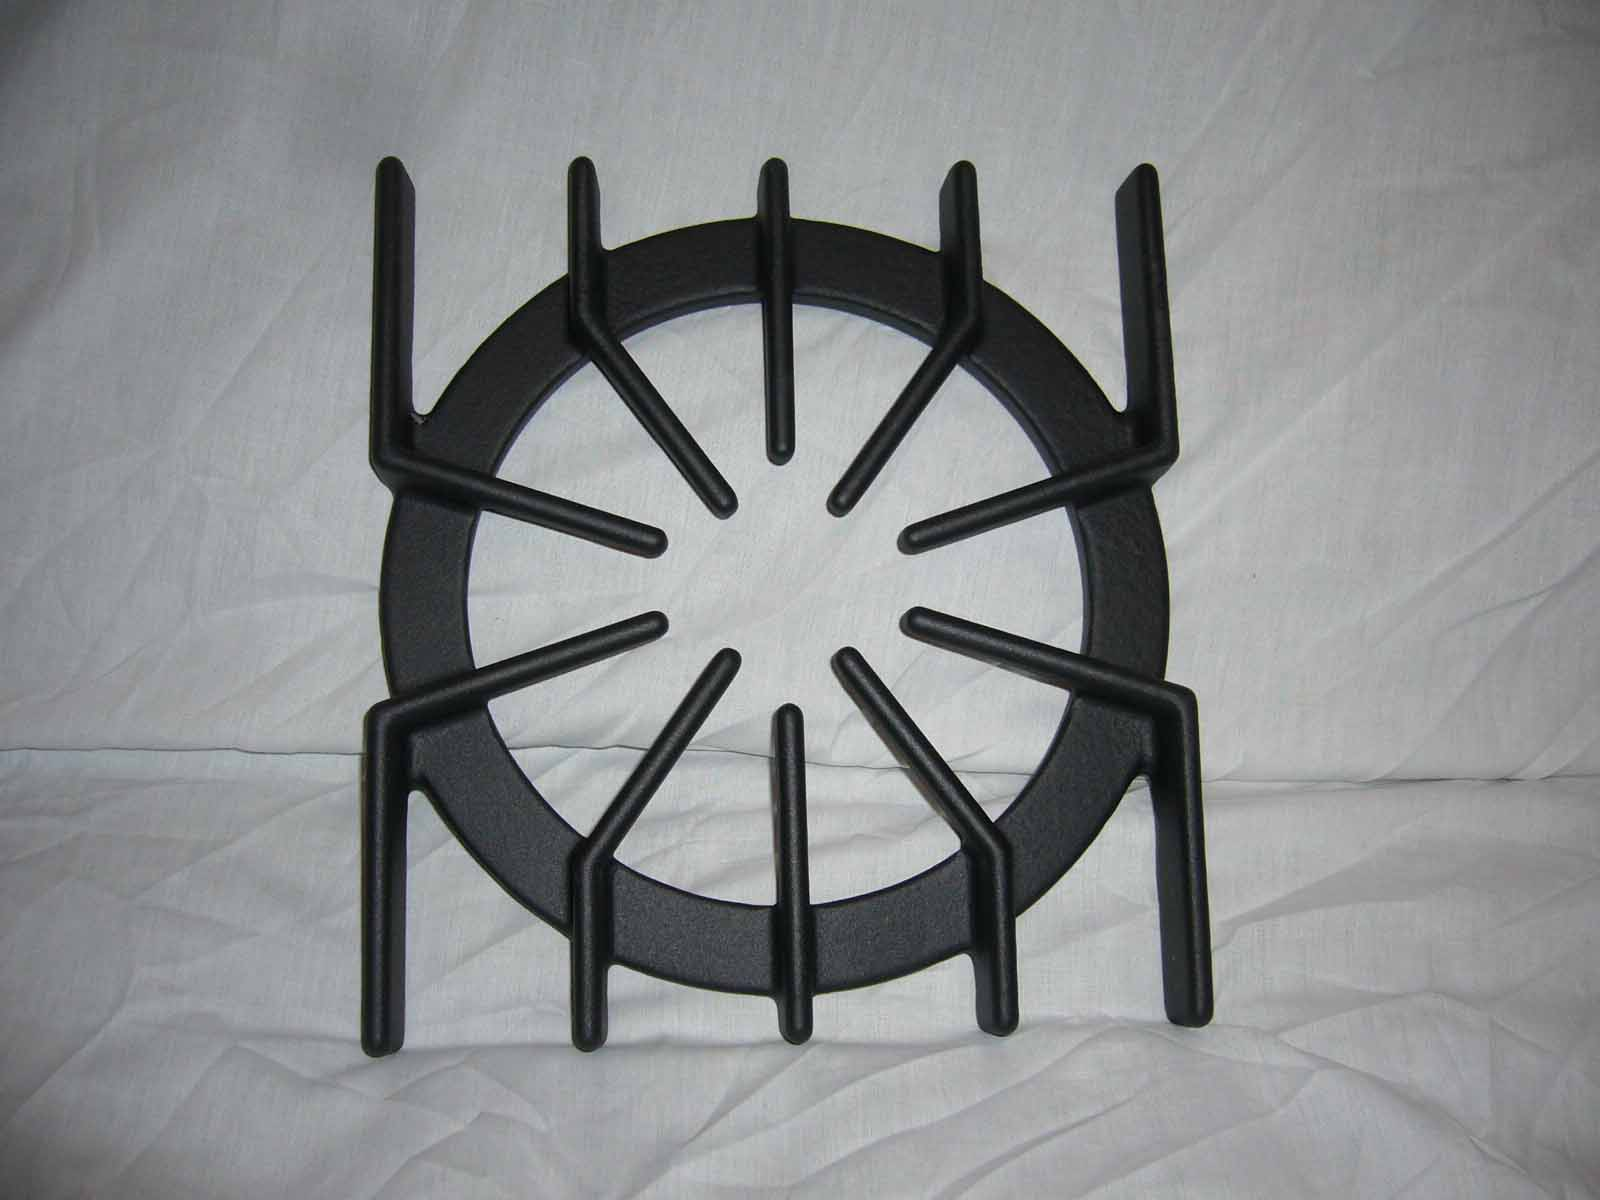 Bundle Pack: Spider grate Part No. PA060037